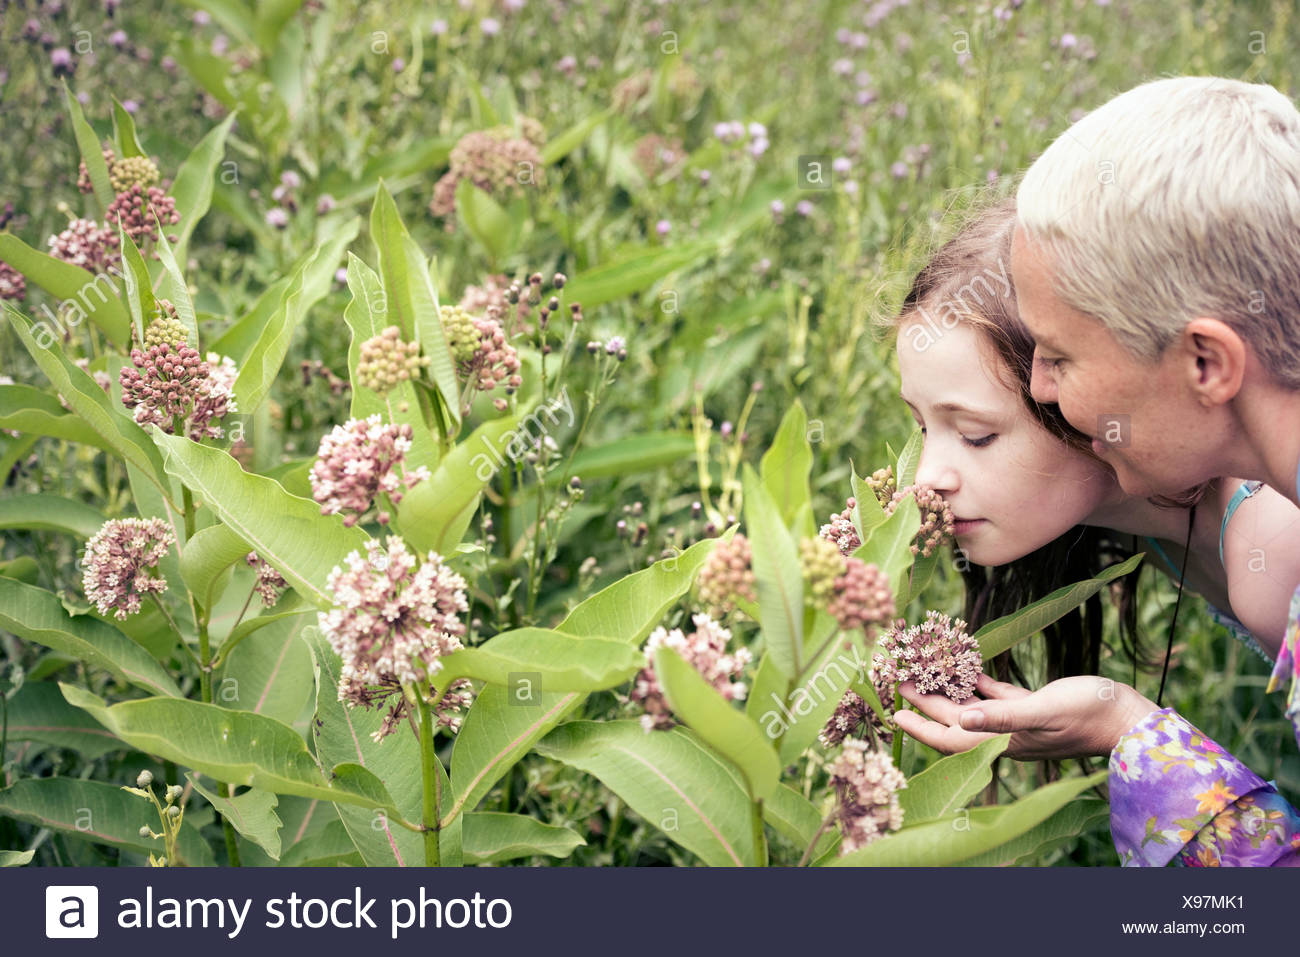 A mature woman and a young girl in a wildflower meadow looking closely at the flowers. Stock Photo